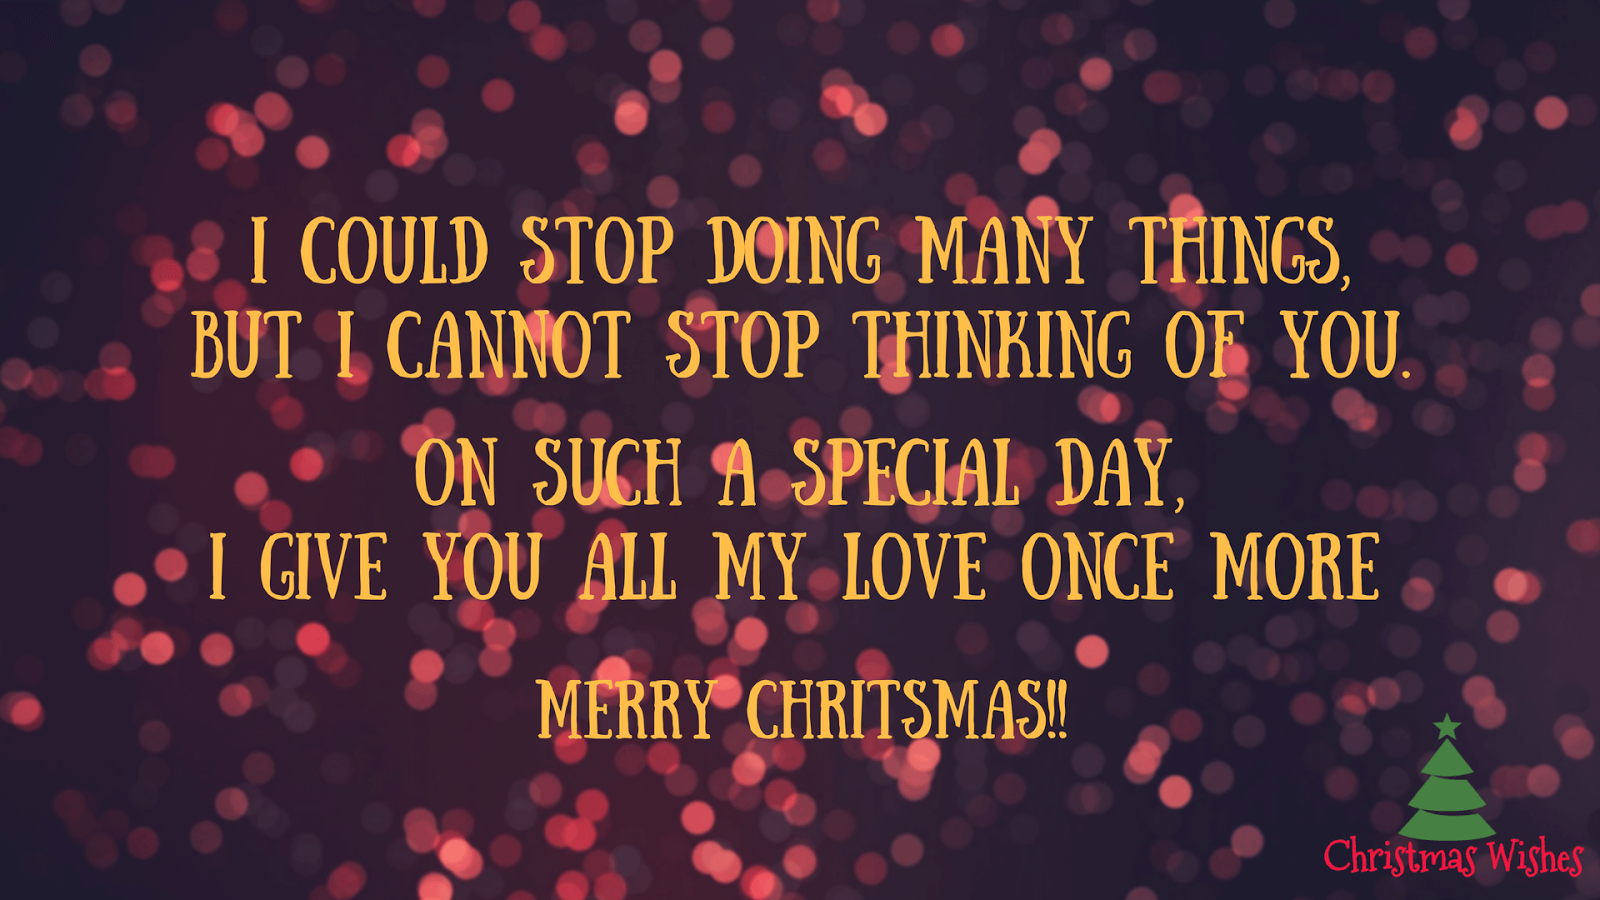 20 beautiful merry christmas messages and wishes for your 3 i could stop doing many thingsbut i cannot stop thinking of you on such a special day i give you all my love once morerry christmas kristyandbryce Choice Image